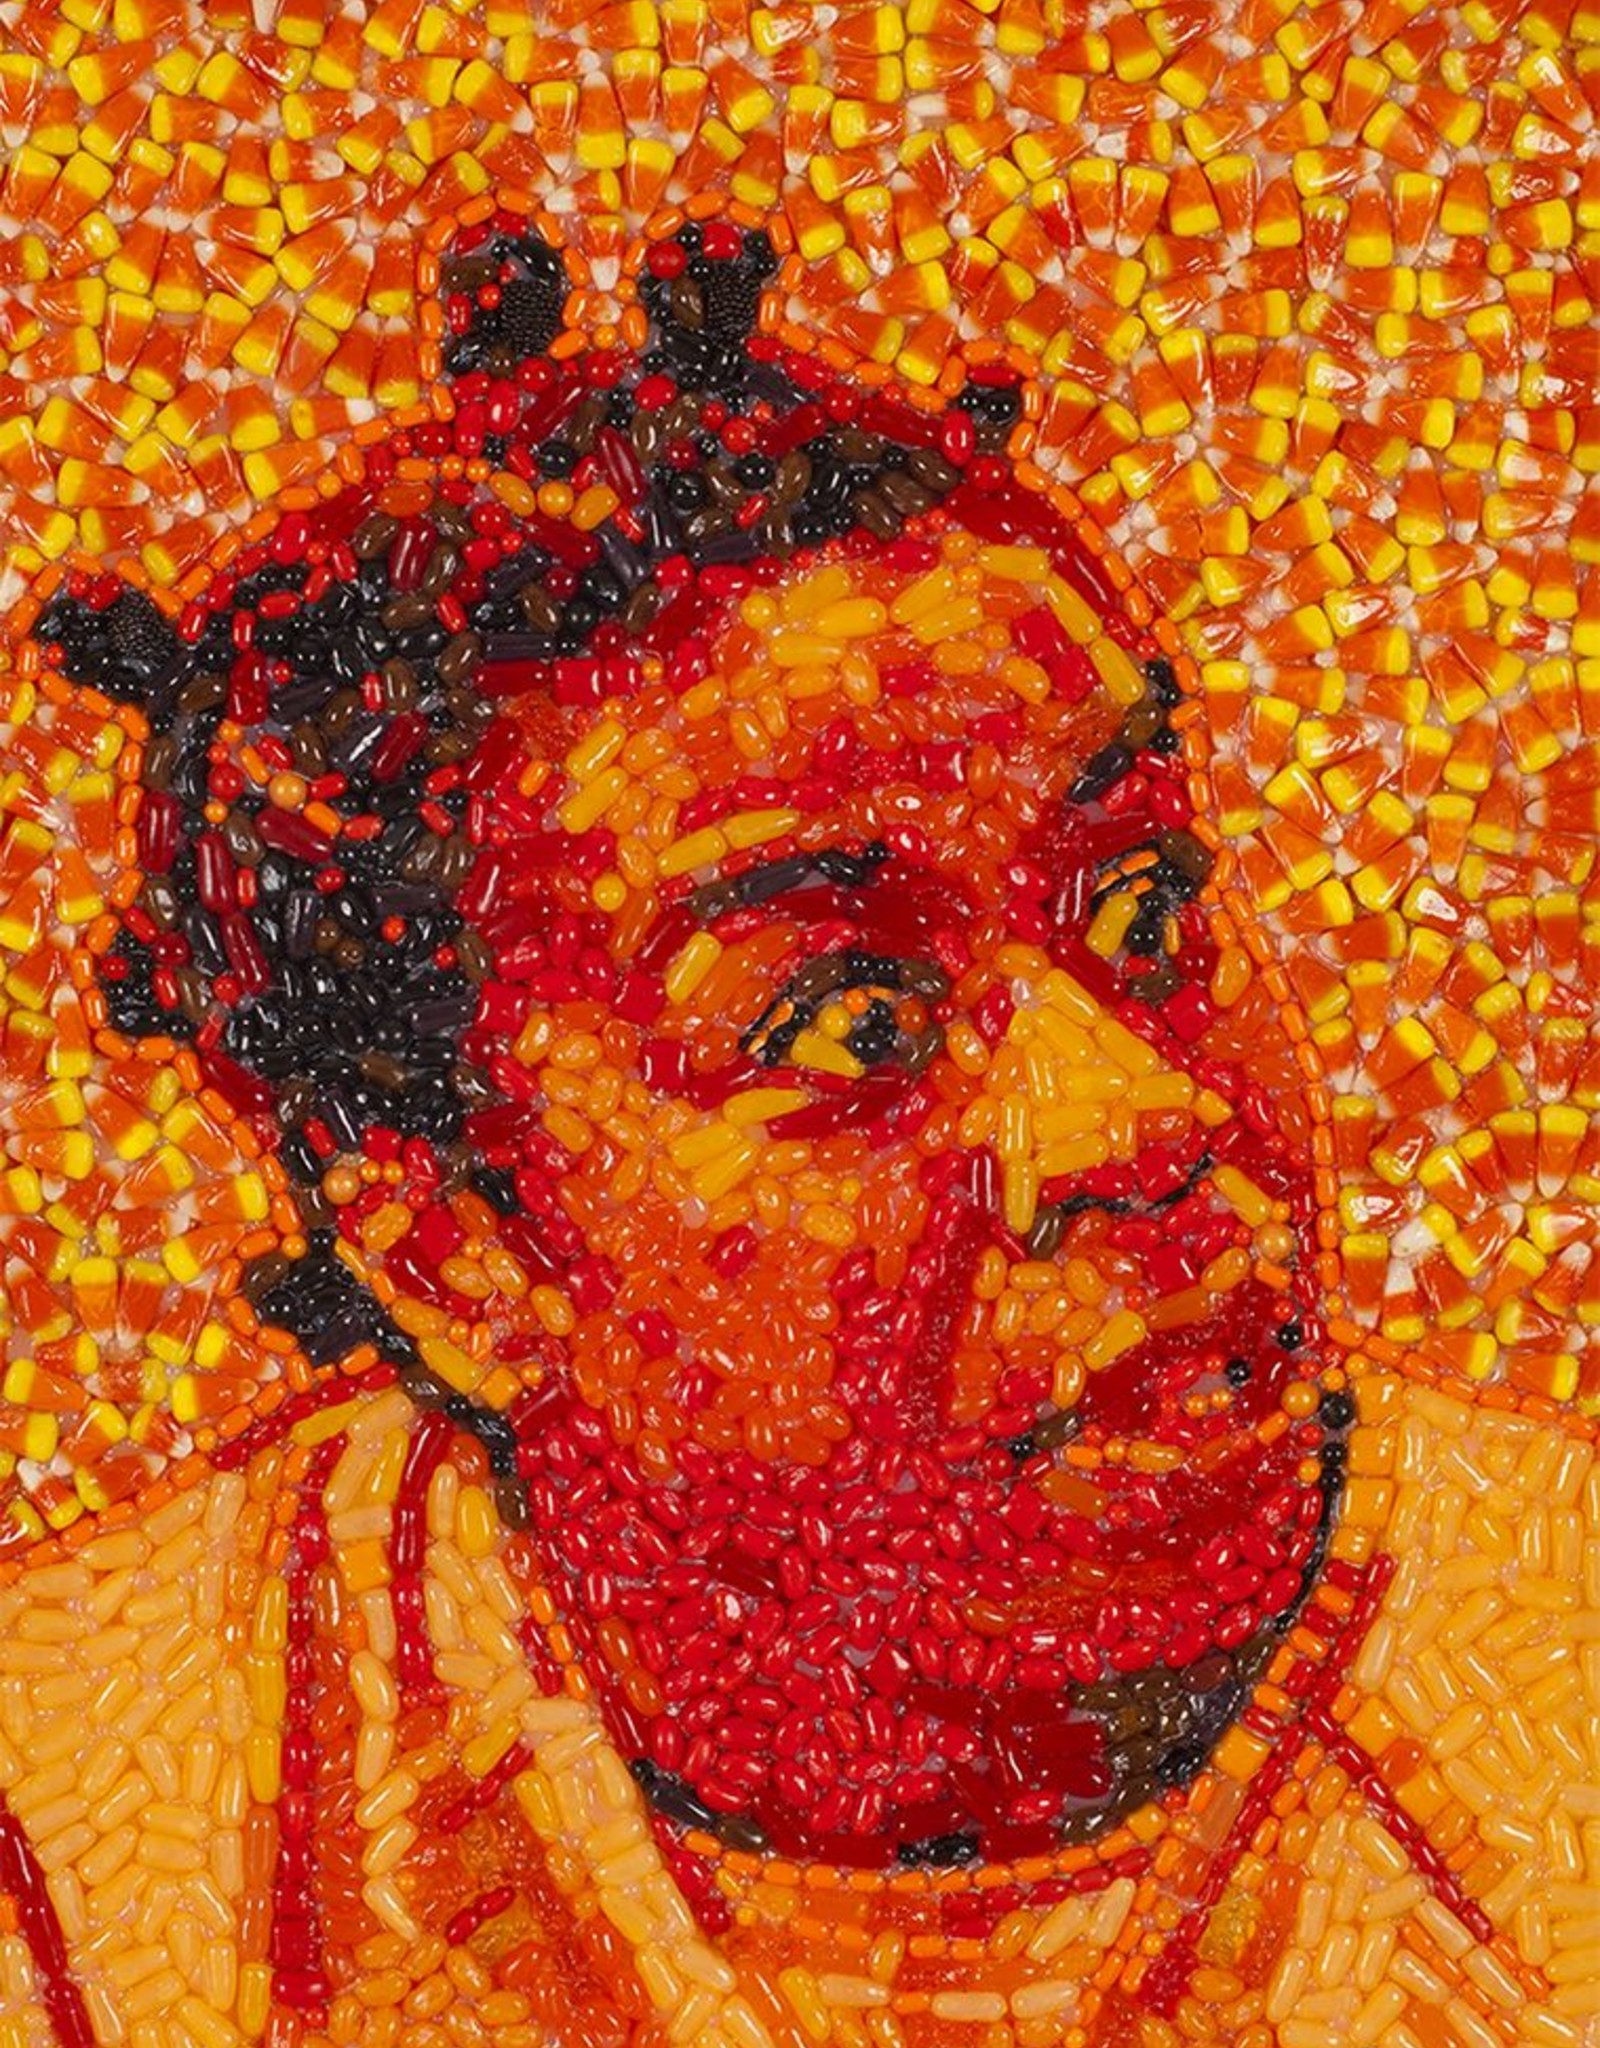 Candylebrity Artwork (18x24) - Crazy Eyes